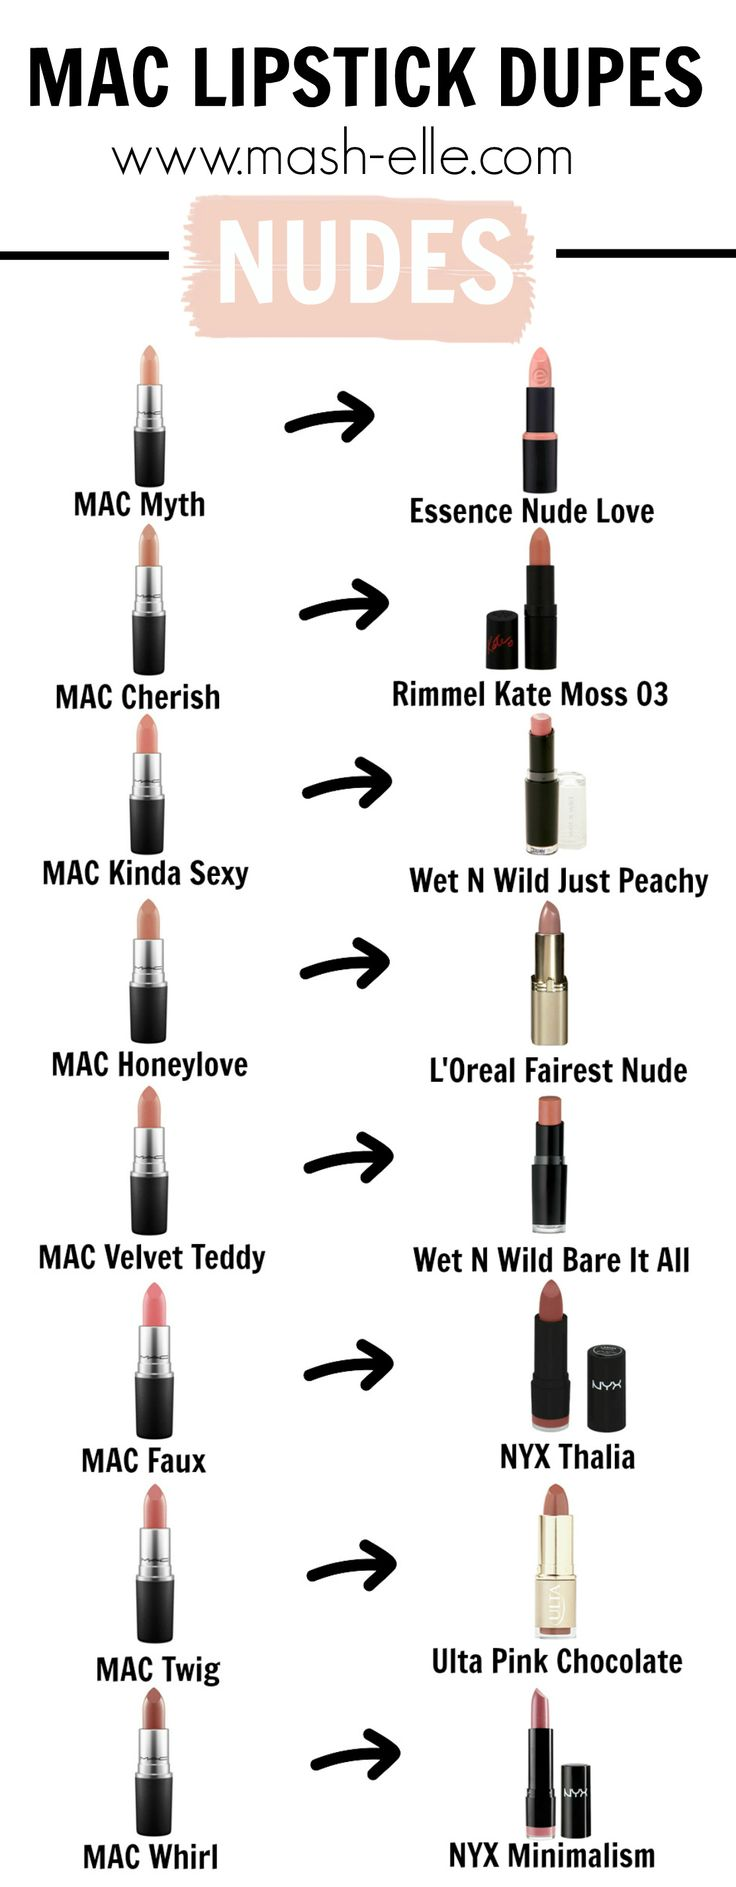 Finally a COMPLETE list of MAC bestseller lipsticks! 30+ of the bestselling MAC shades paired with drugstore dupes!